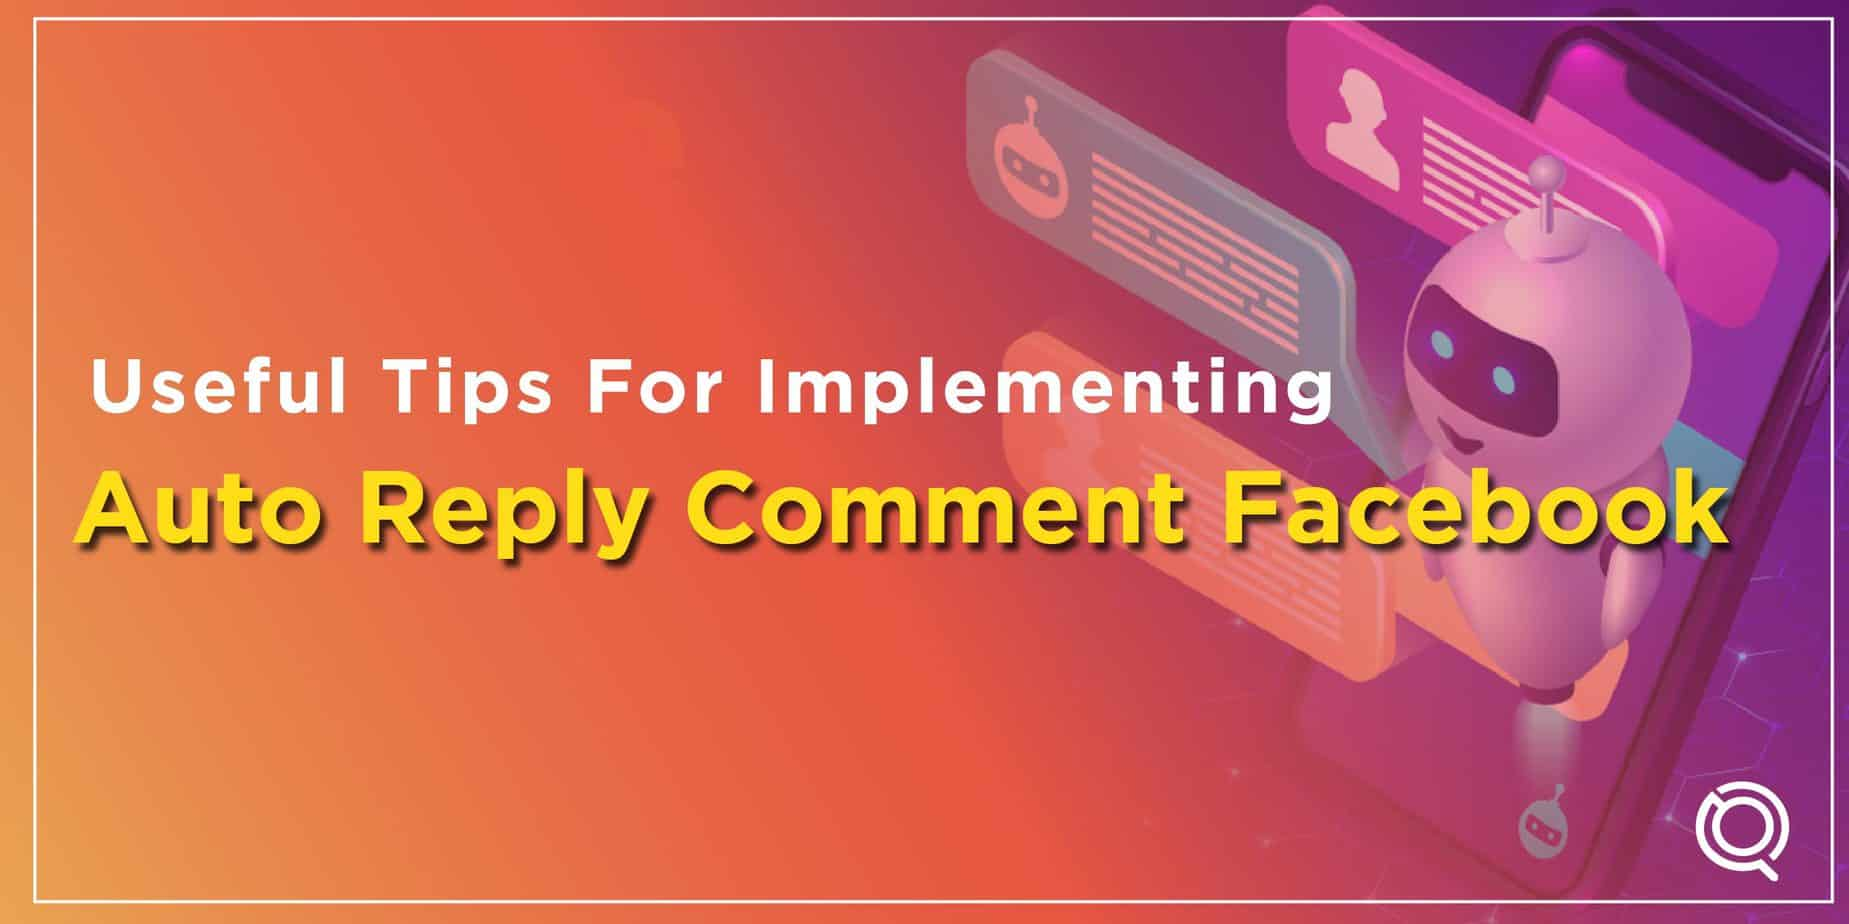 Useful Tips For Implementing Auto Reply Comment Facebook by Trusted Digital Marketing Agency Malaysia One Search Pro